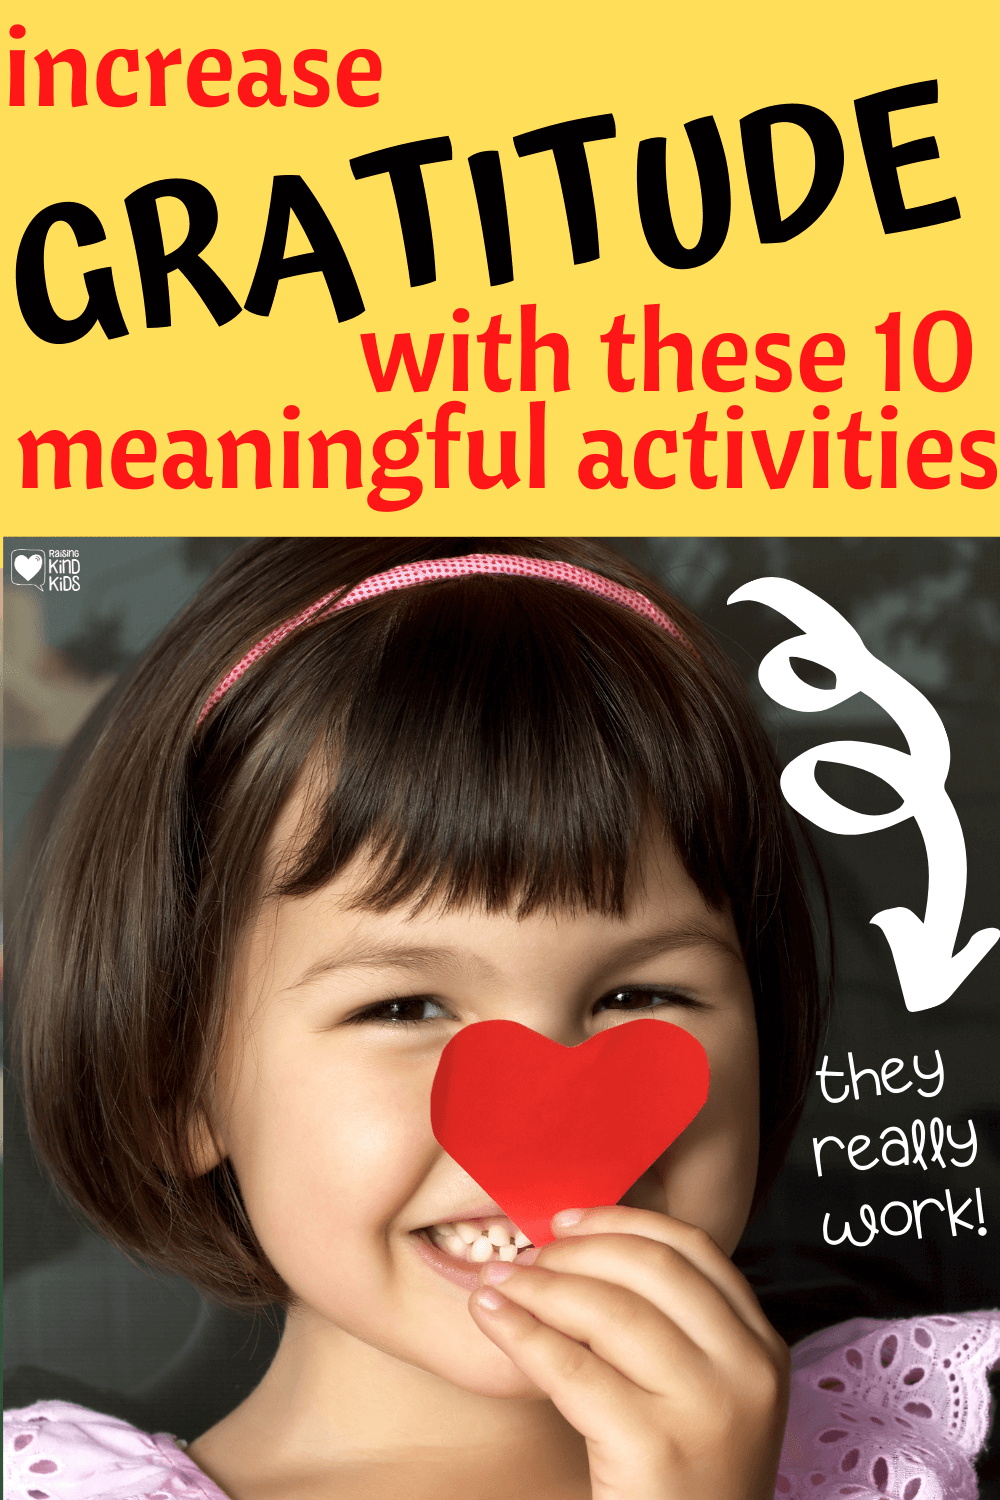 10 of the best and most meaningful year-round gratitude activities #gratitude #gratefulness #thankfulness #yearroundgratitude #teachignkidstobegrateful #teachingkidstobethankful #yearroundgratitude #coffeeandcarpool #gratitudeforkids #thankfulnessforkids